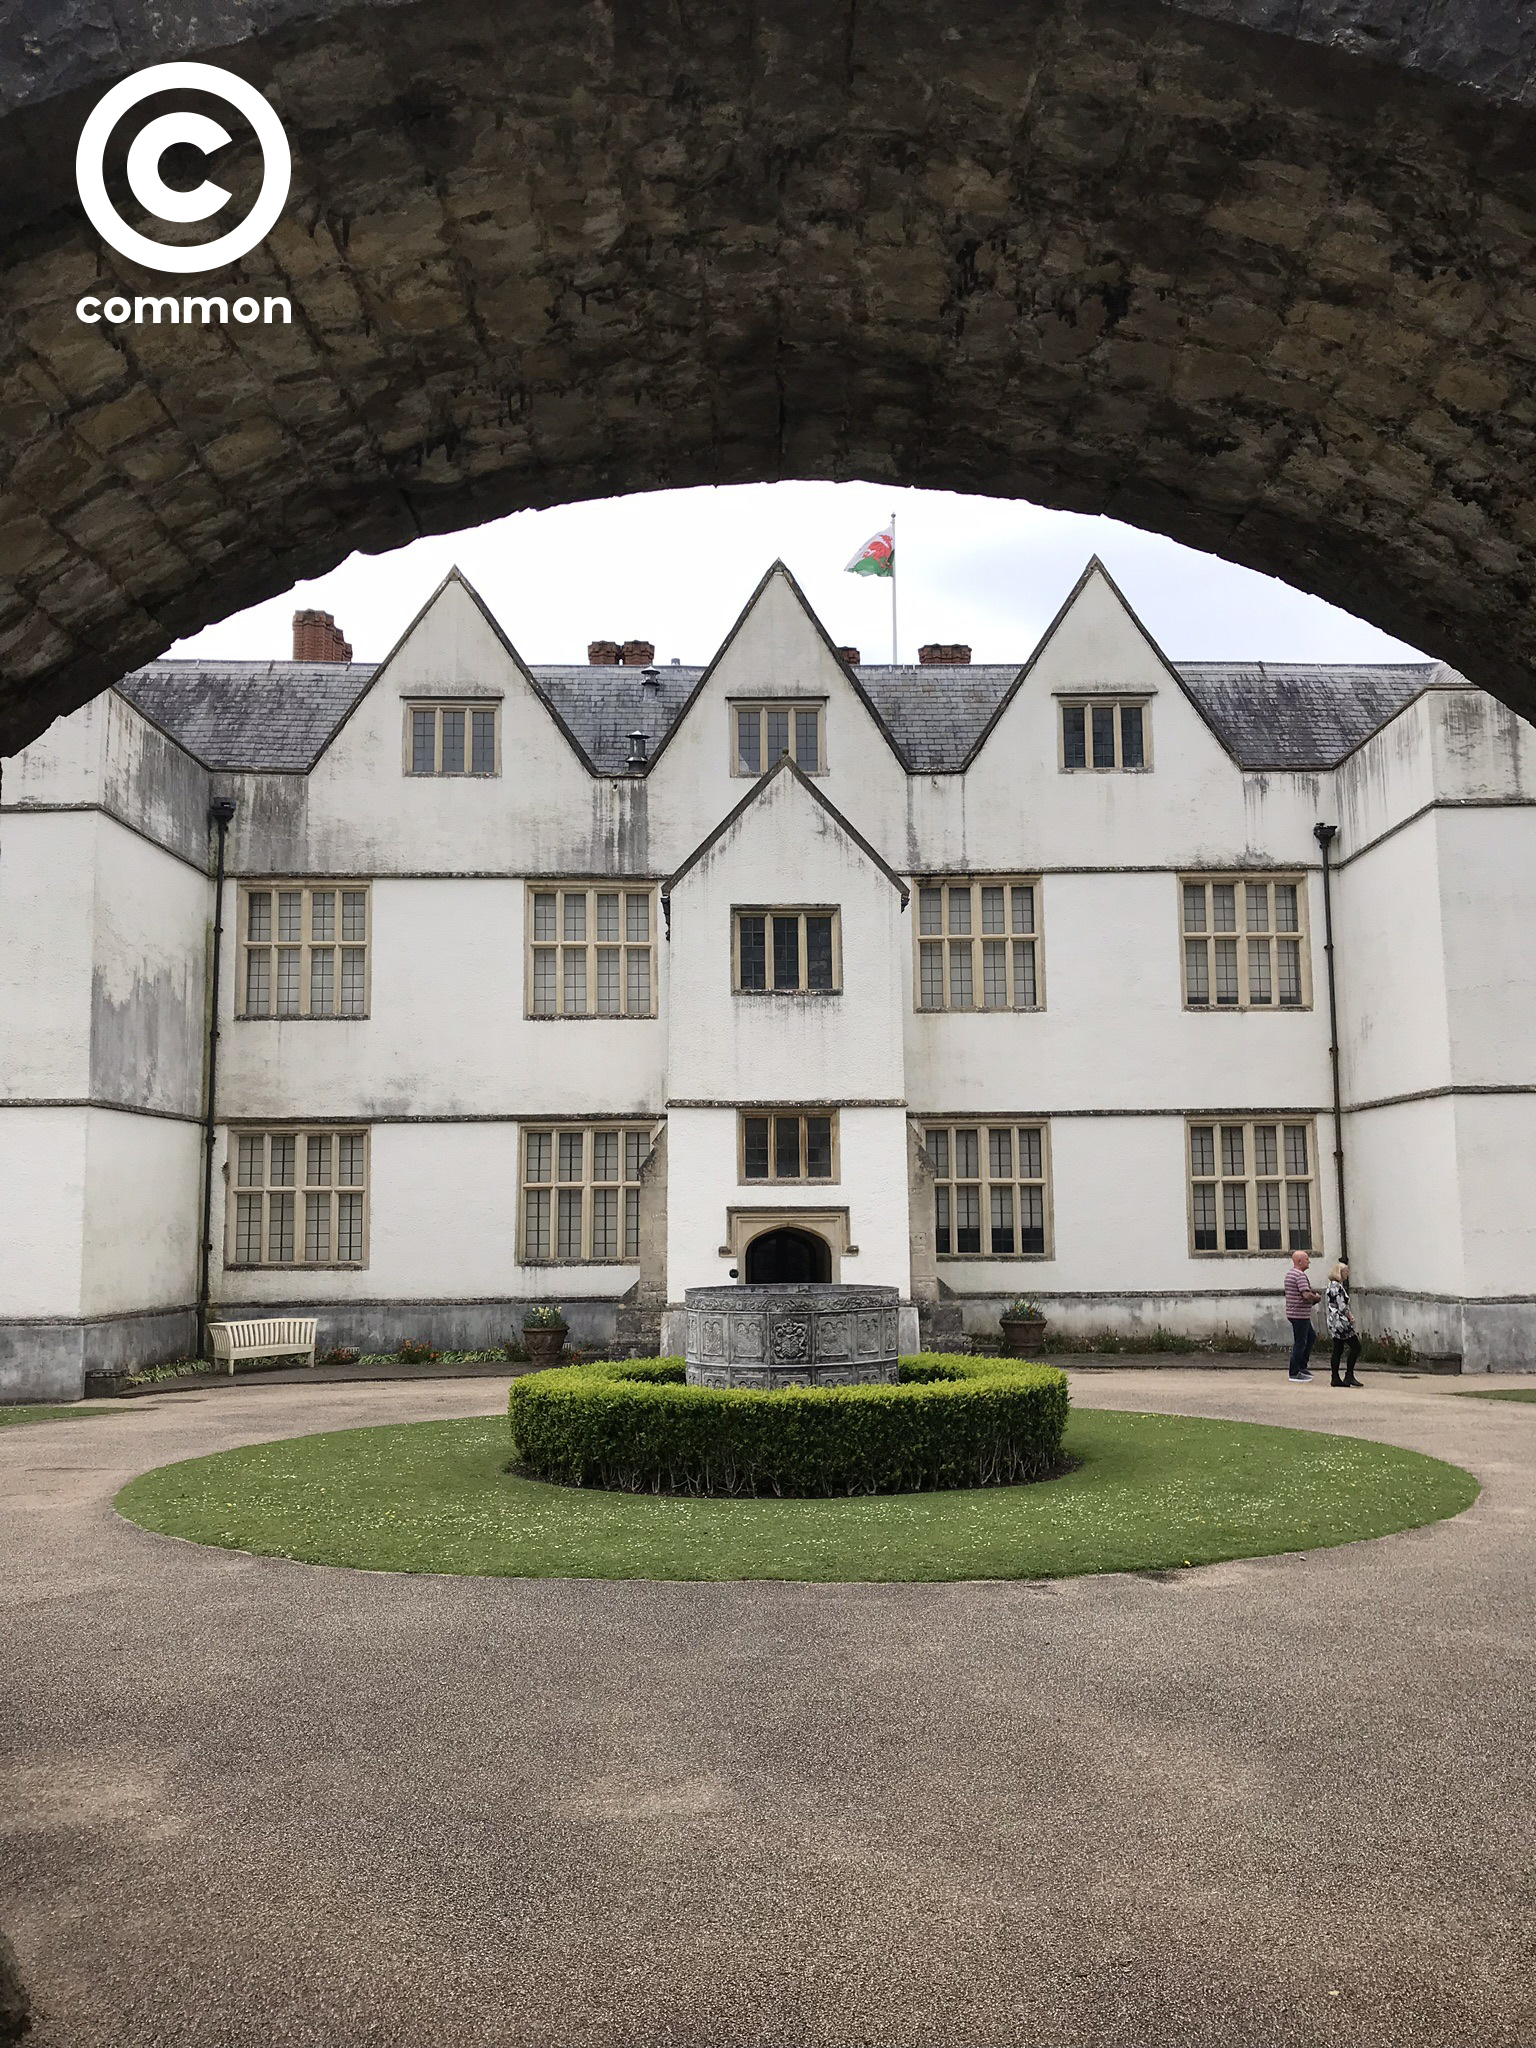 St Fagans National Museum of History